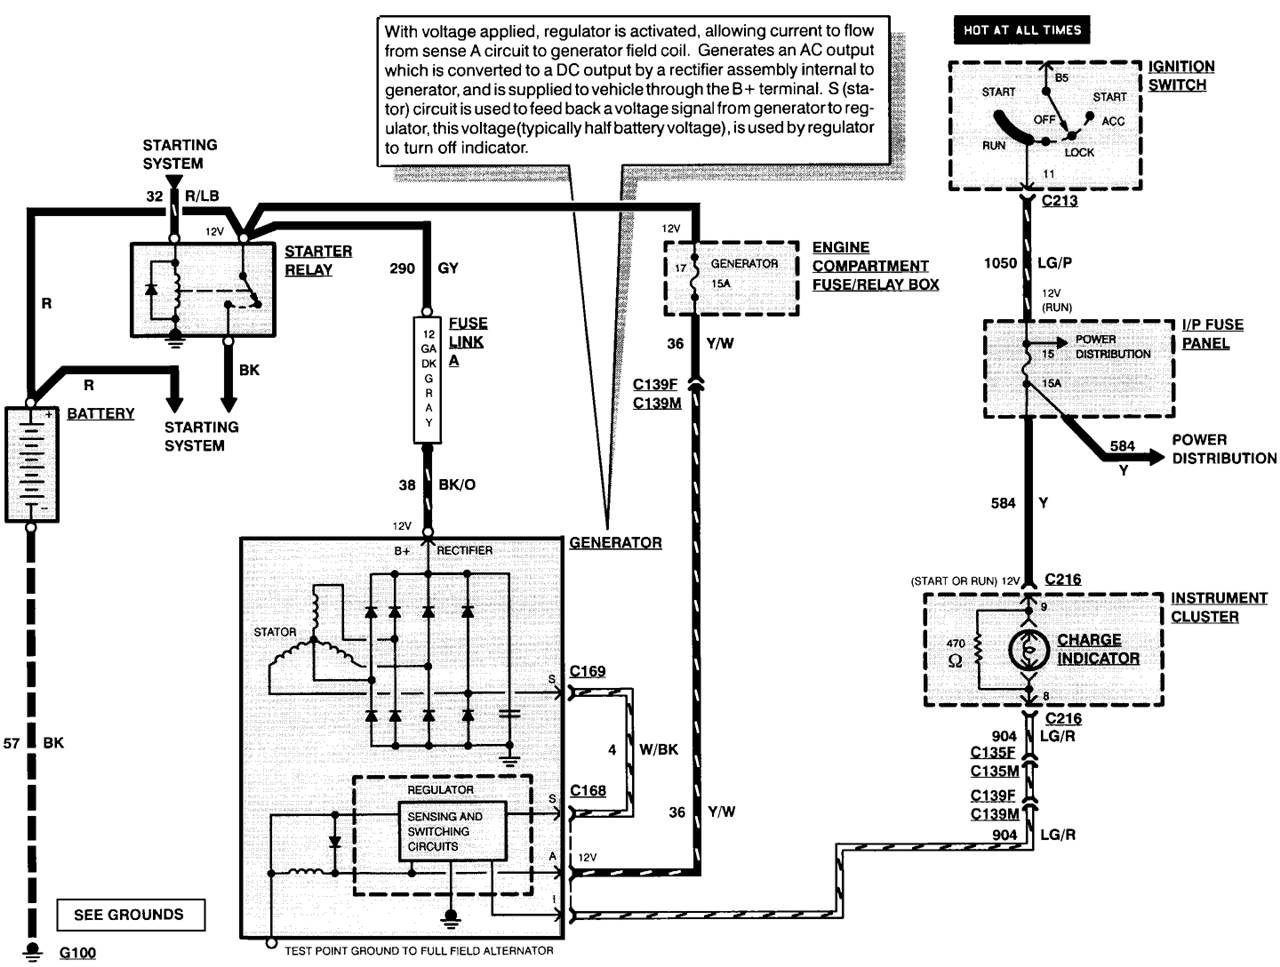 Ford alternator wiring diagram internal regulator?resized665%2C502 alternator wire diagram efcaviation com mopar alternator wiring diagram at creativeand.co